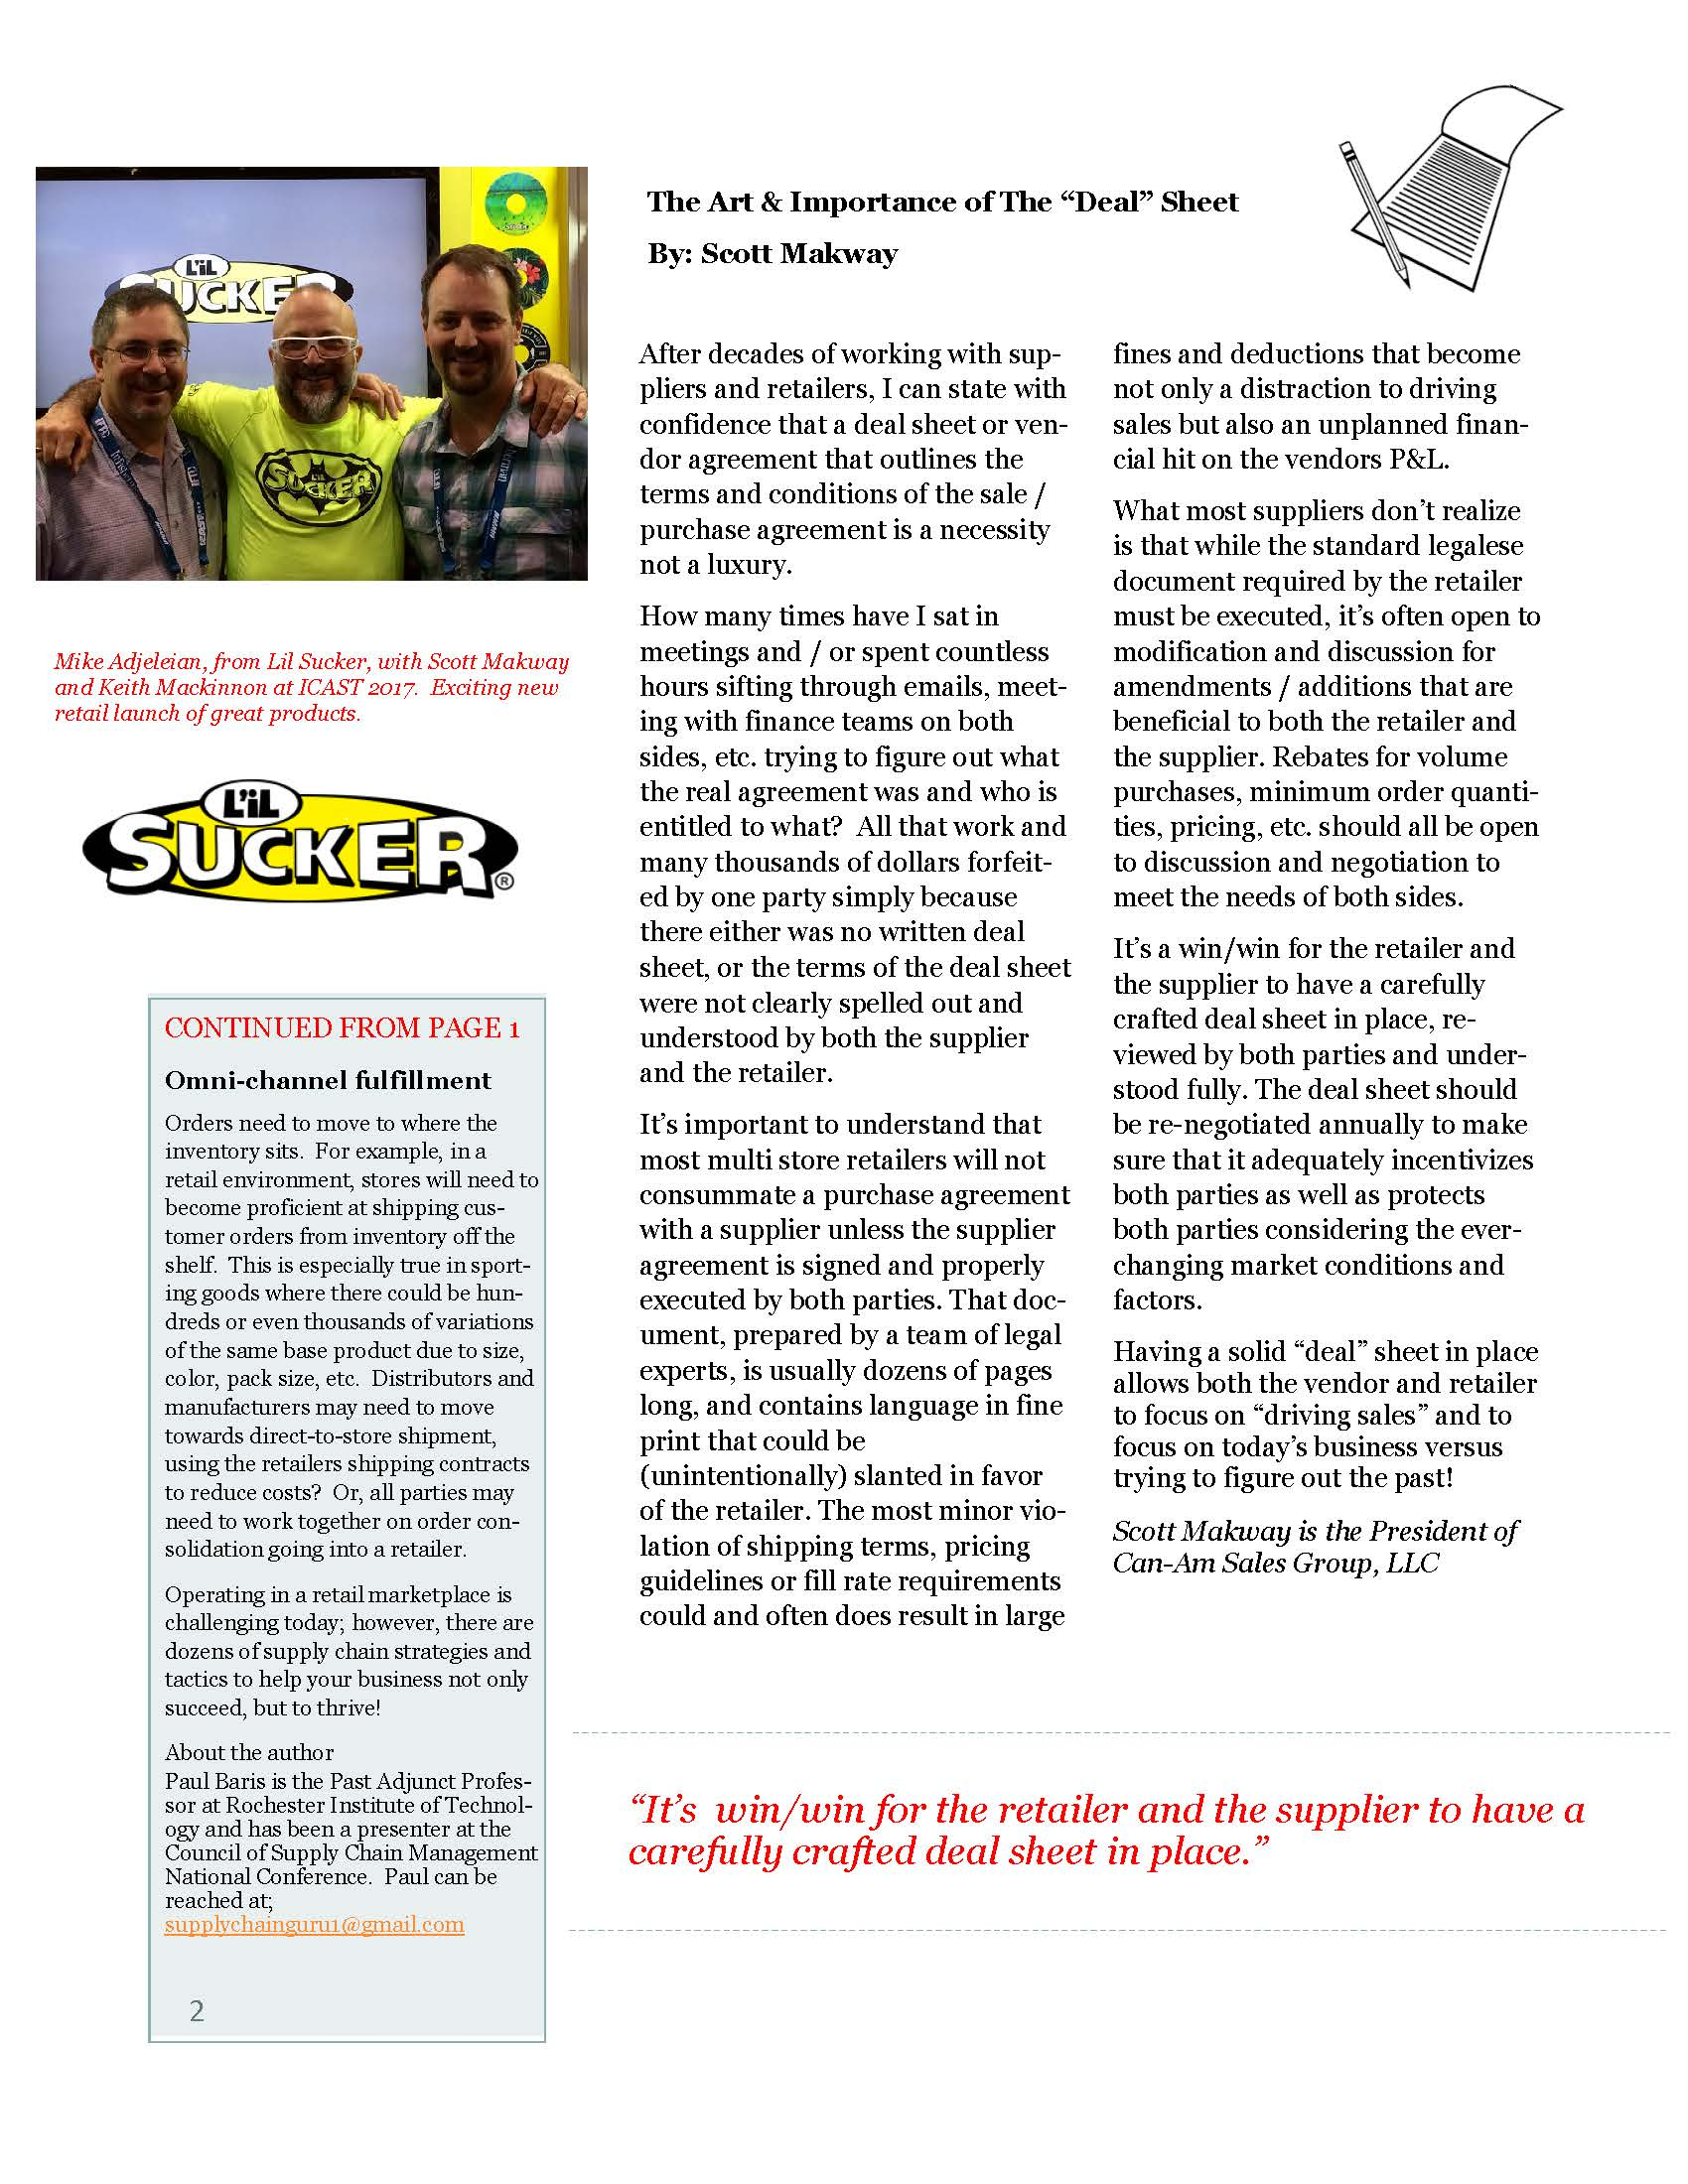 CanAm Newsletter Volume 1, Page 2